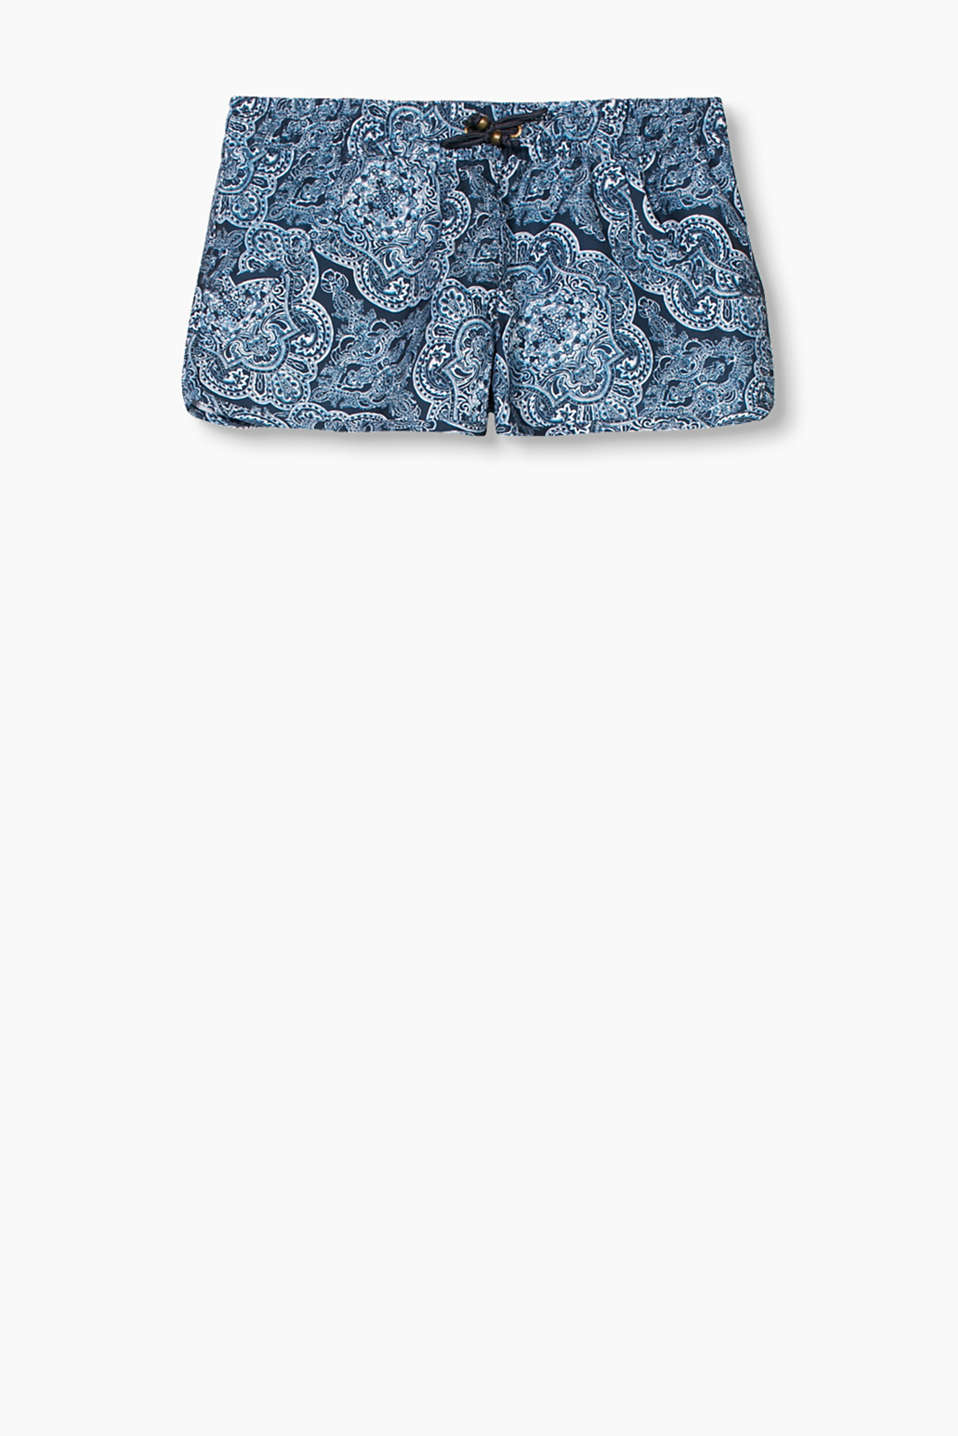 A beautiful print creates a must-have piece - like these silky shorts with a paisley pattern!